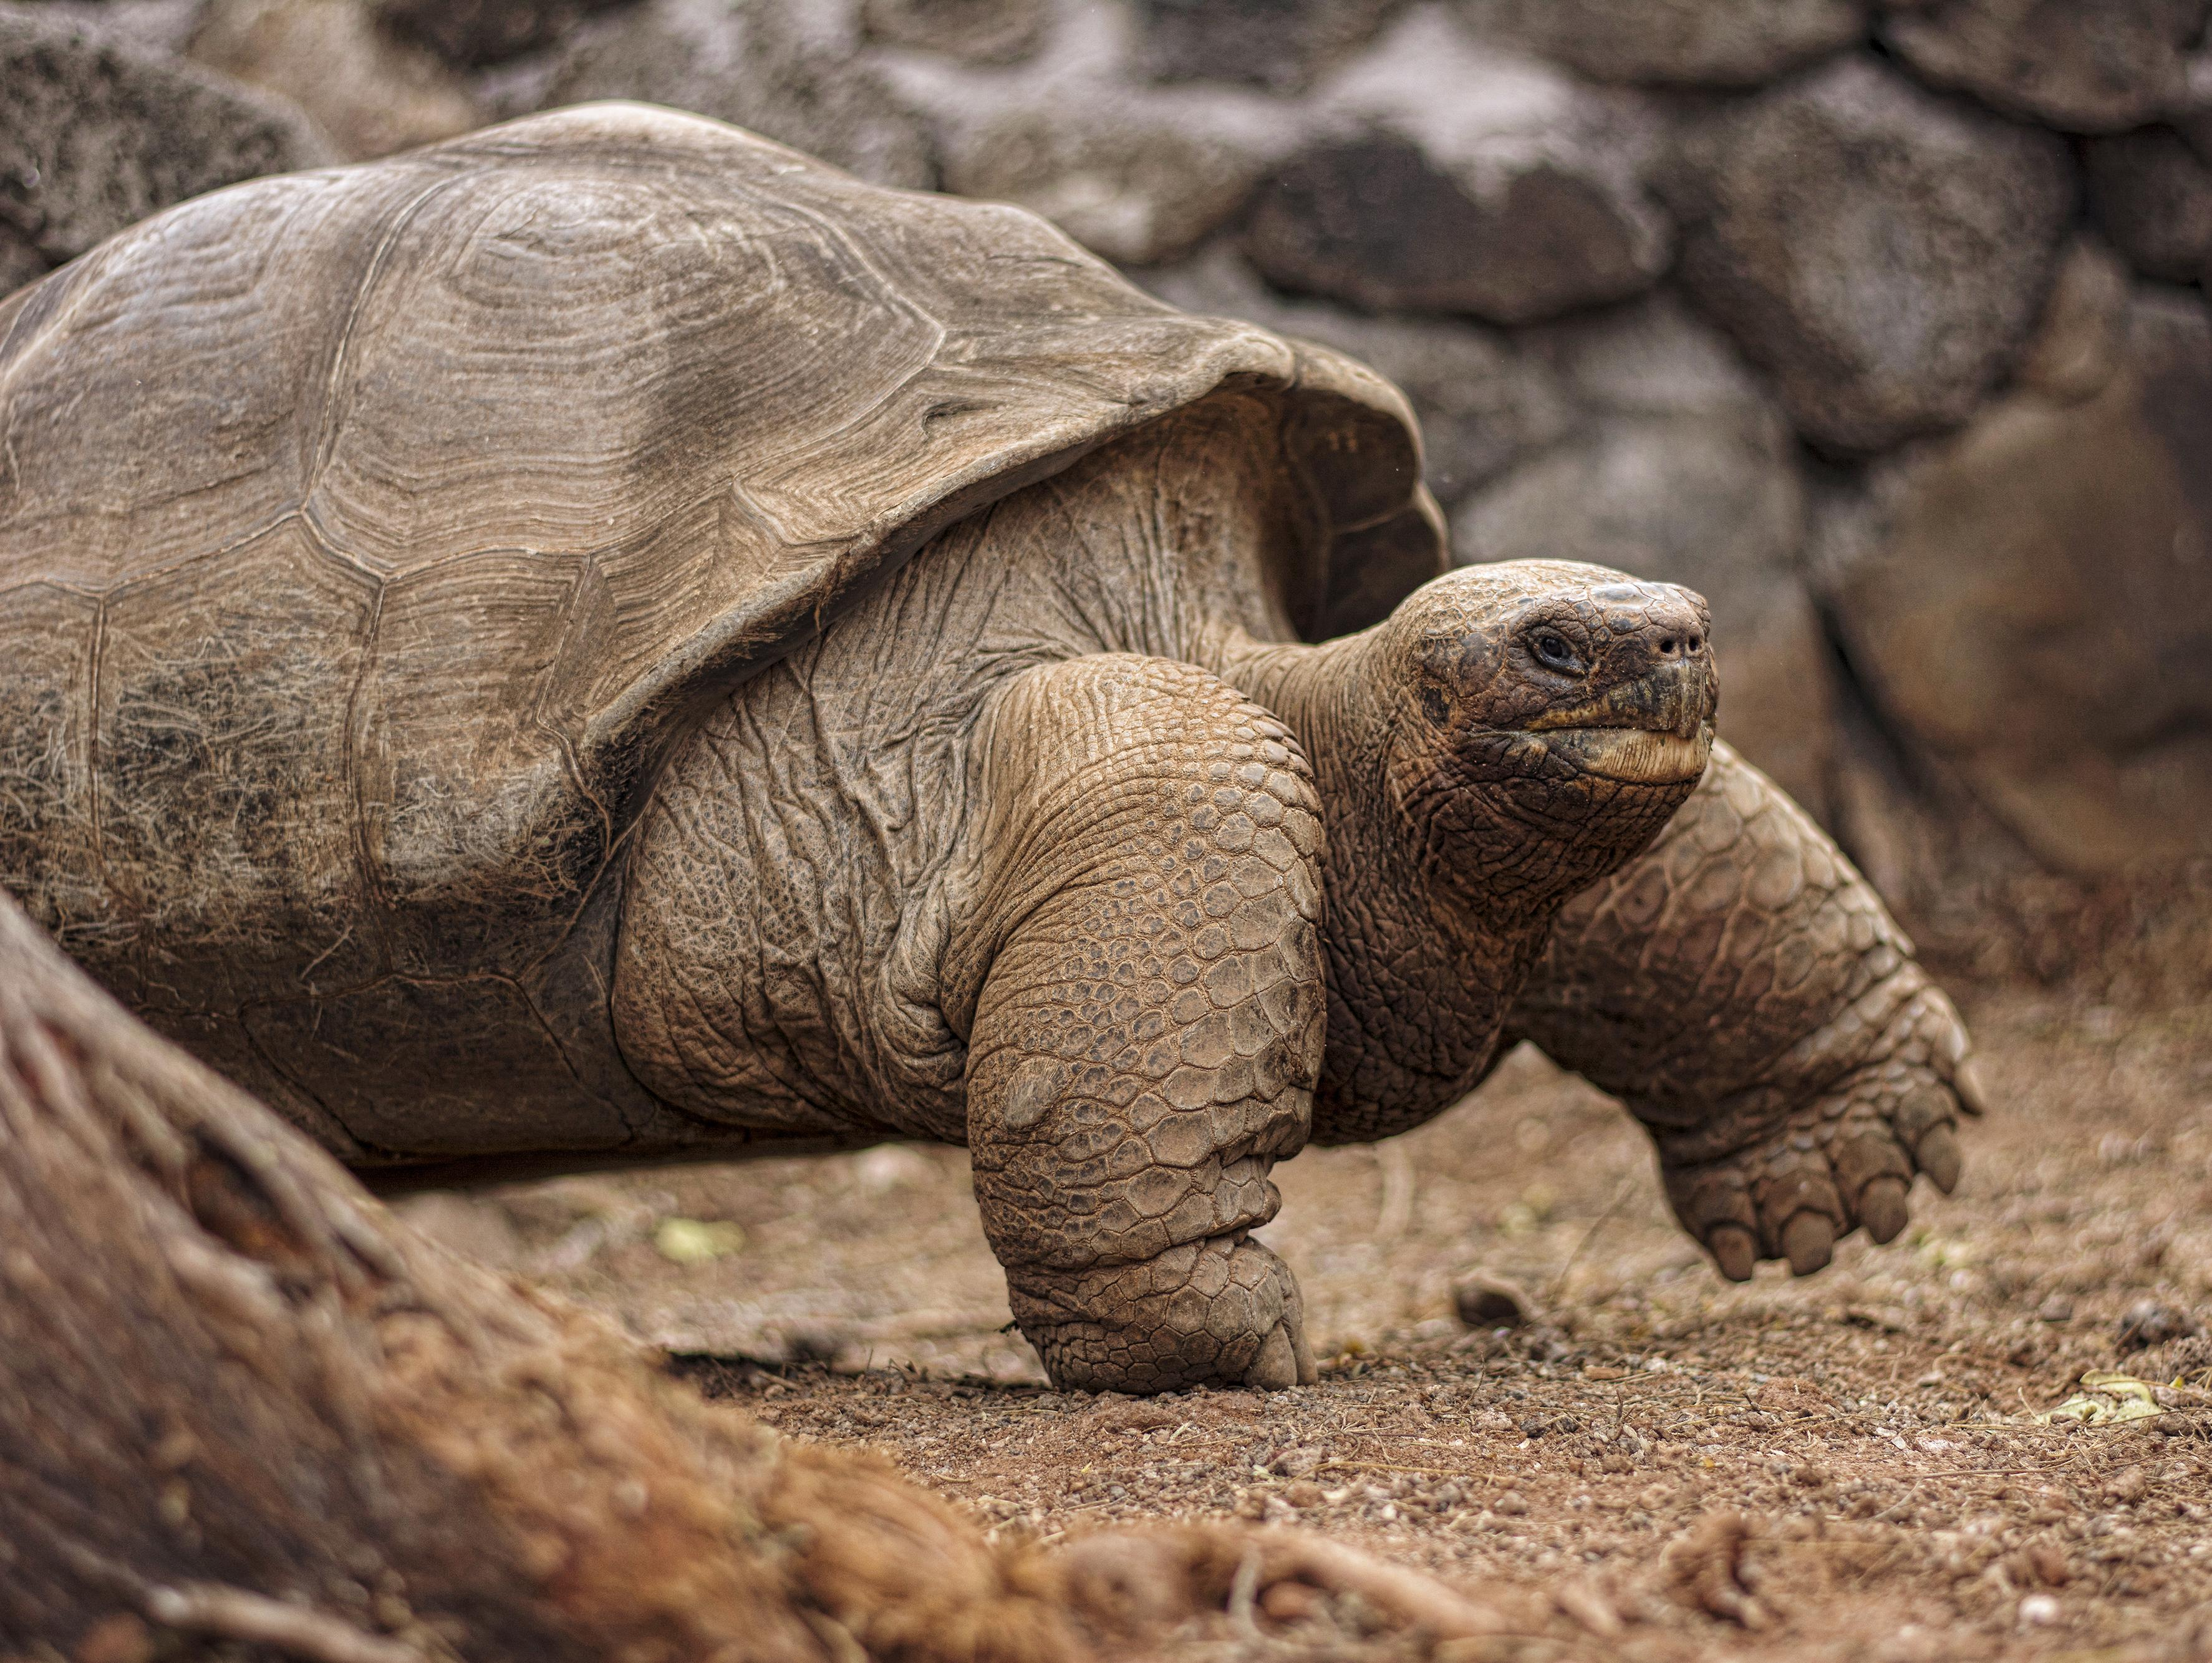 Giant Tortoise - Endangered Species in the Galapagos